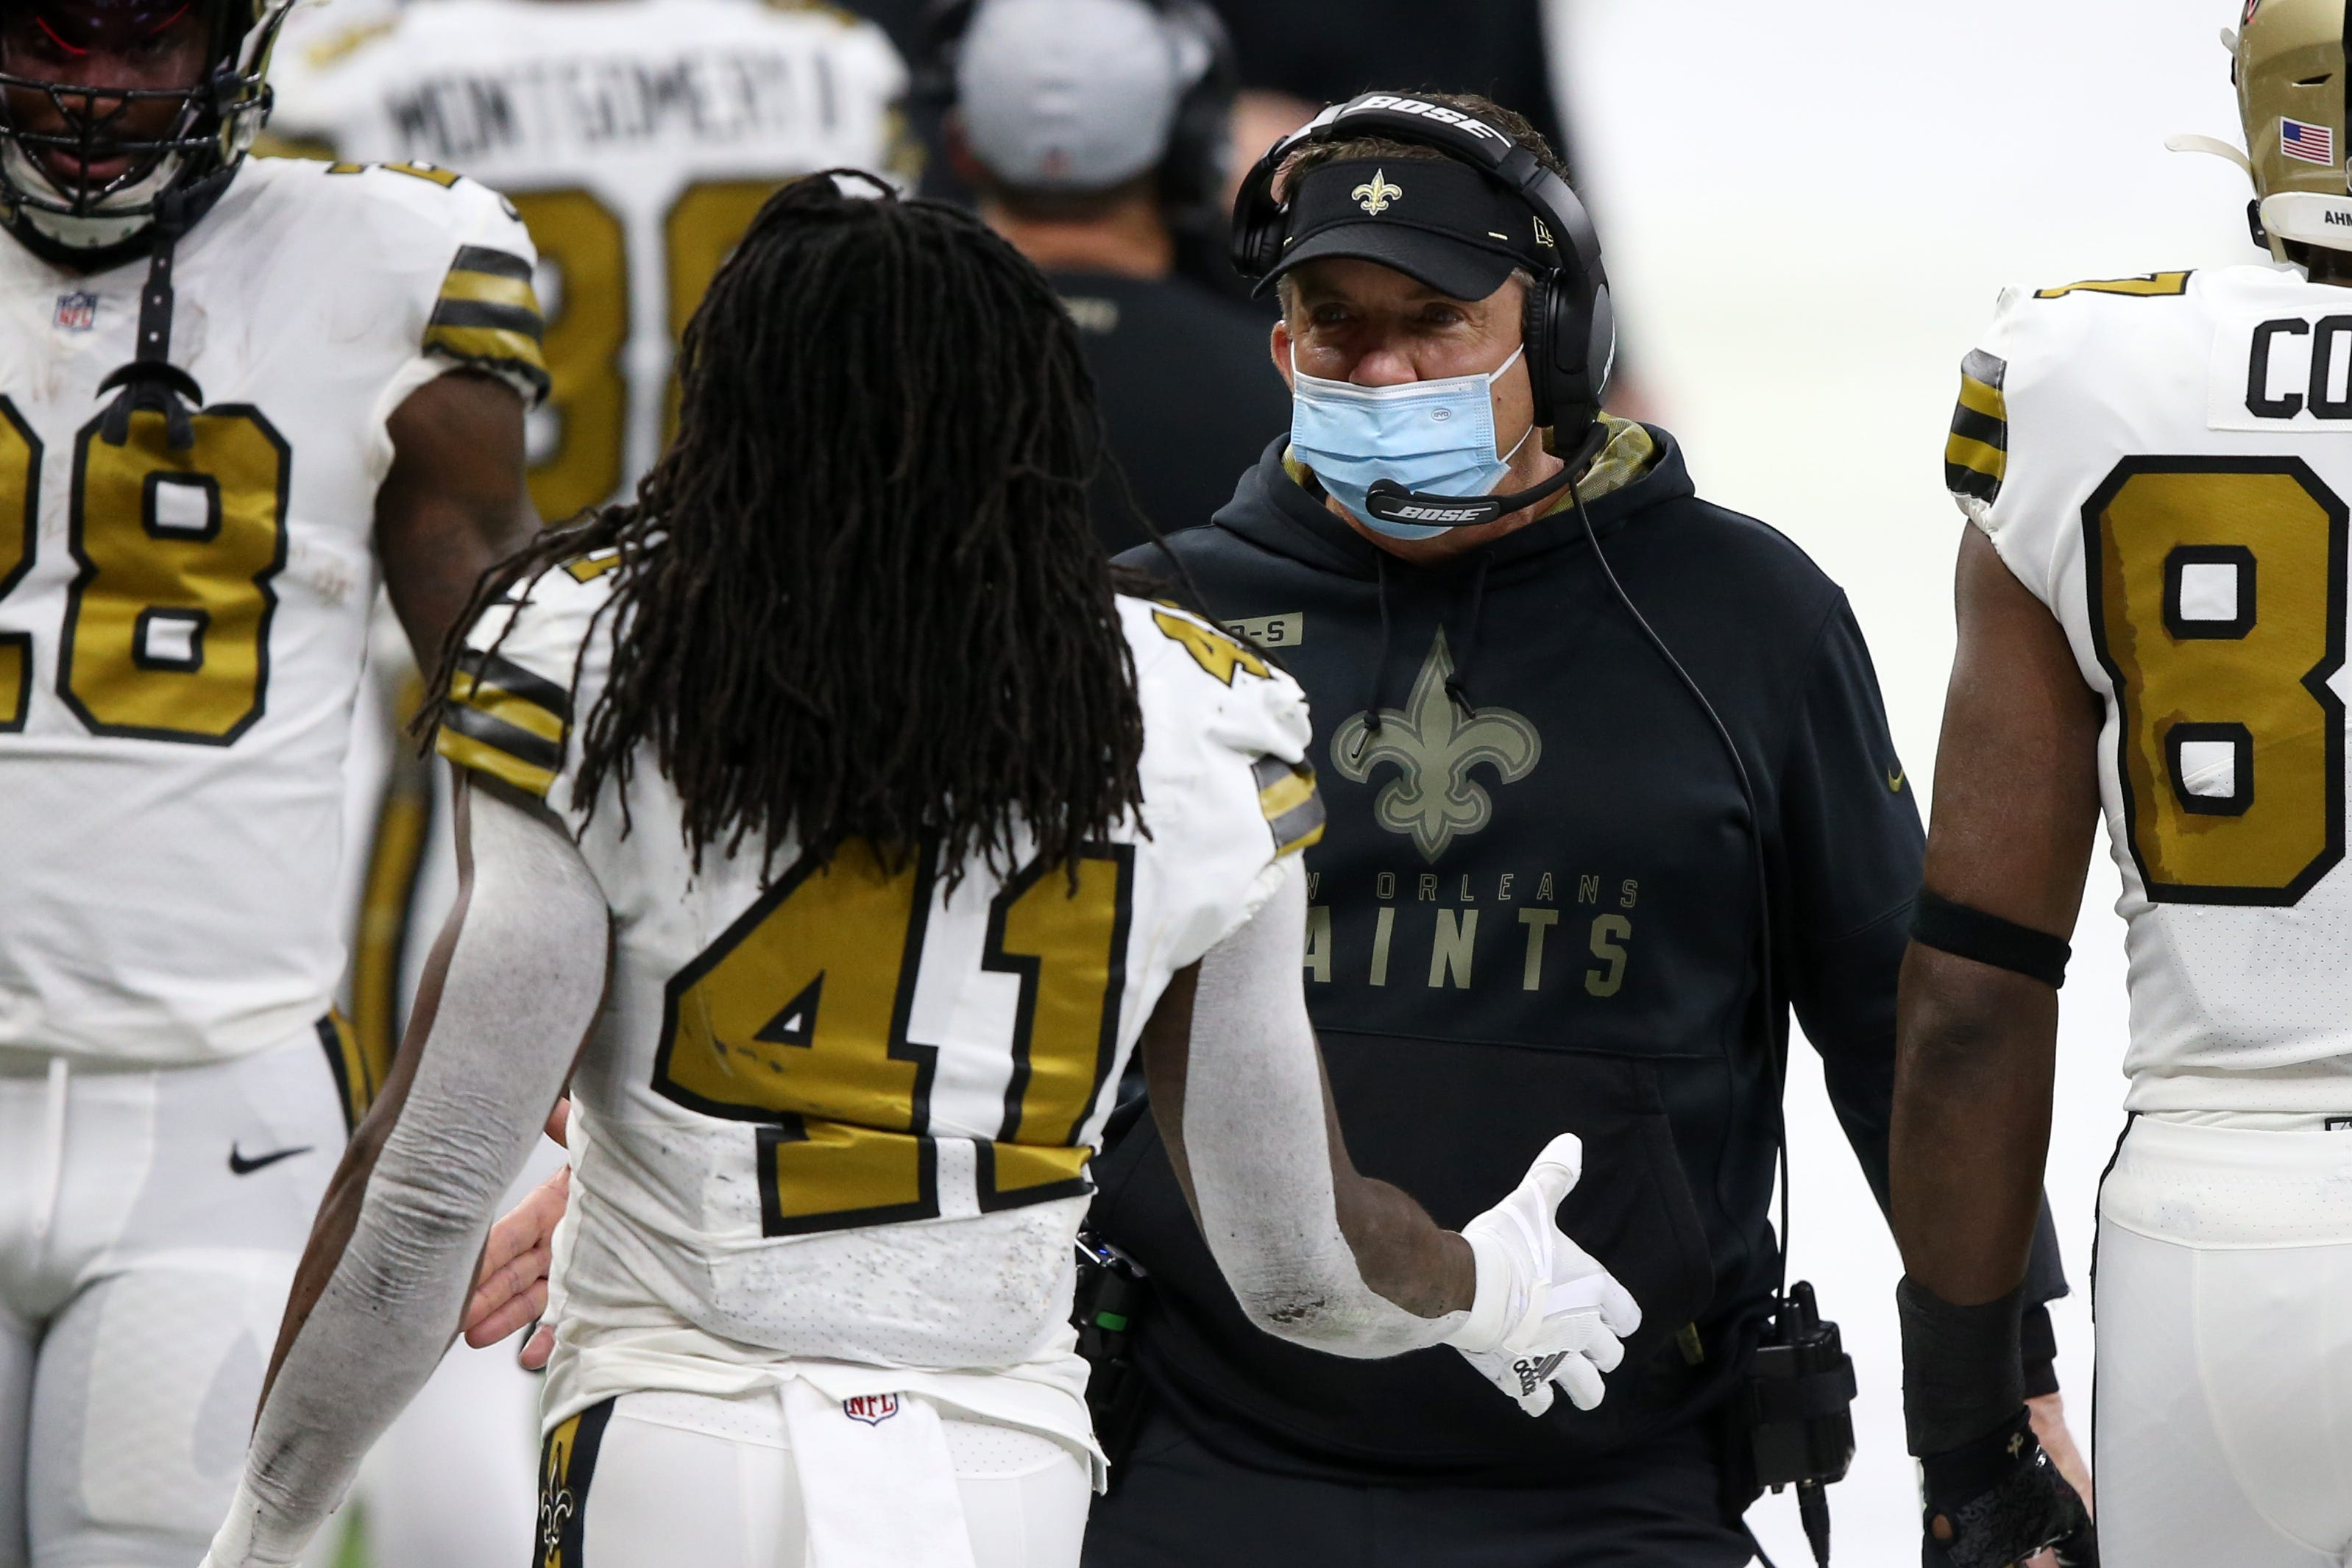 NFL playoff picture as Week 16 begins: New Orleans Saints finally clinch NFC South